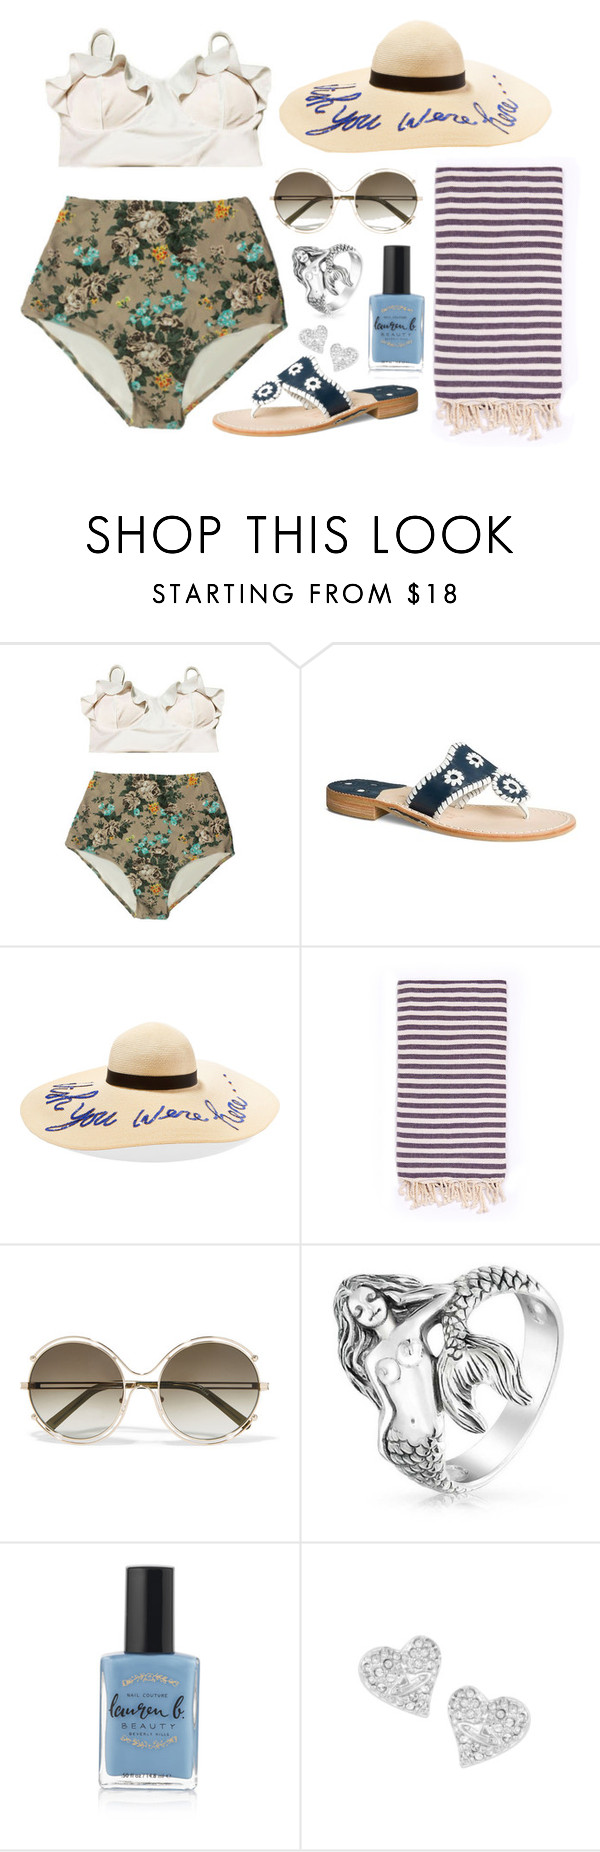 """""""Vintage Beach Babe"""" by bekanator ❤ liked on Polyvore featuring Jack Rogers, Eugenia Kim, Turkish-T, Chloé, Bling Jewelry, Lauren B. Beauty, Vivienne Westwood, vintage, Summer and beach"""